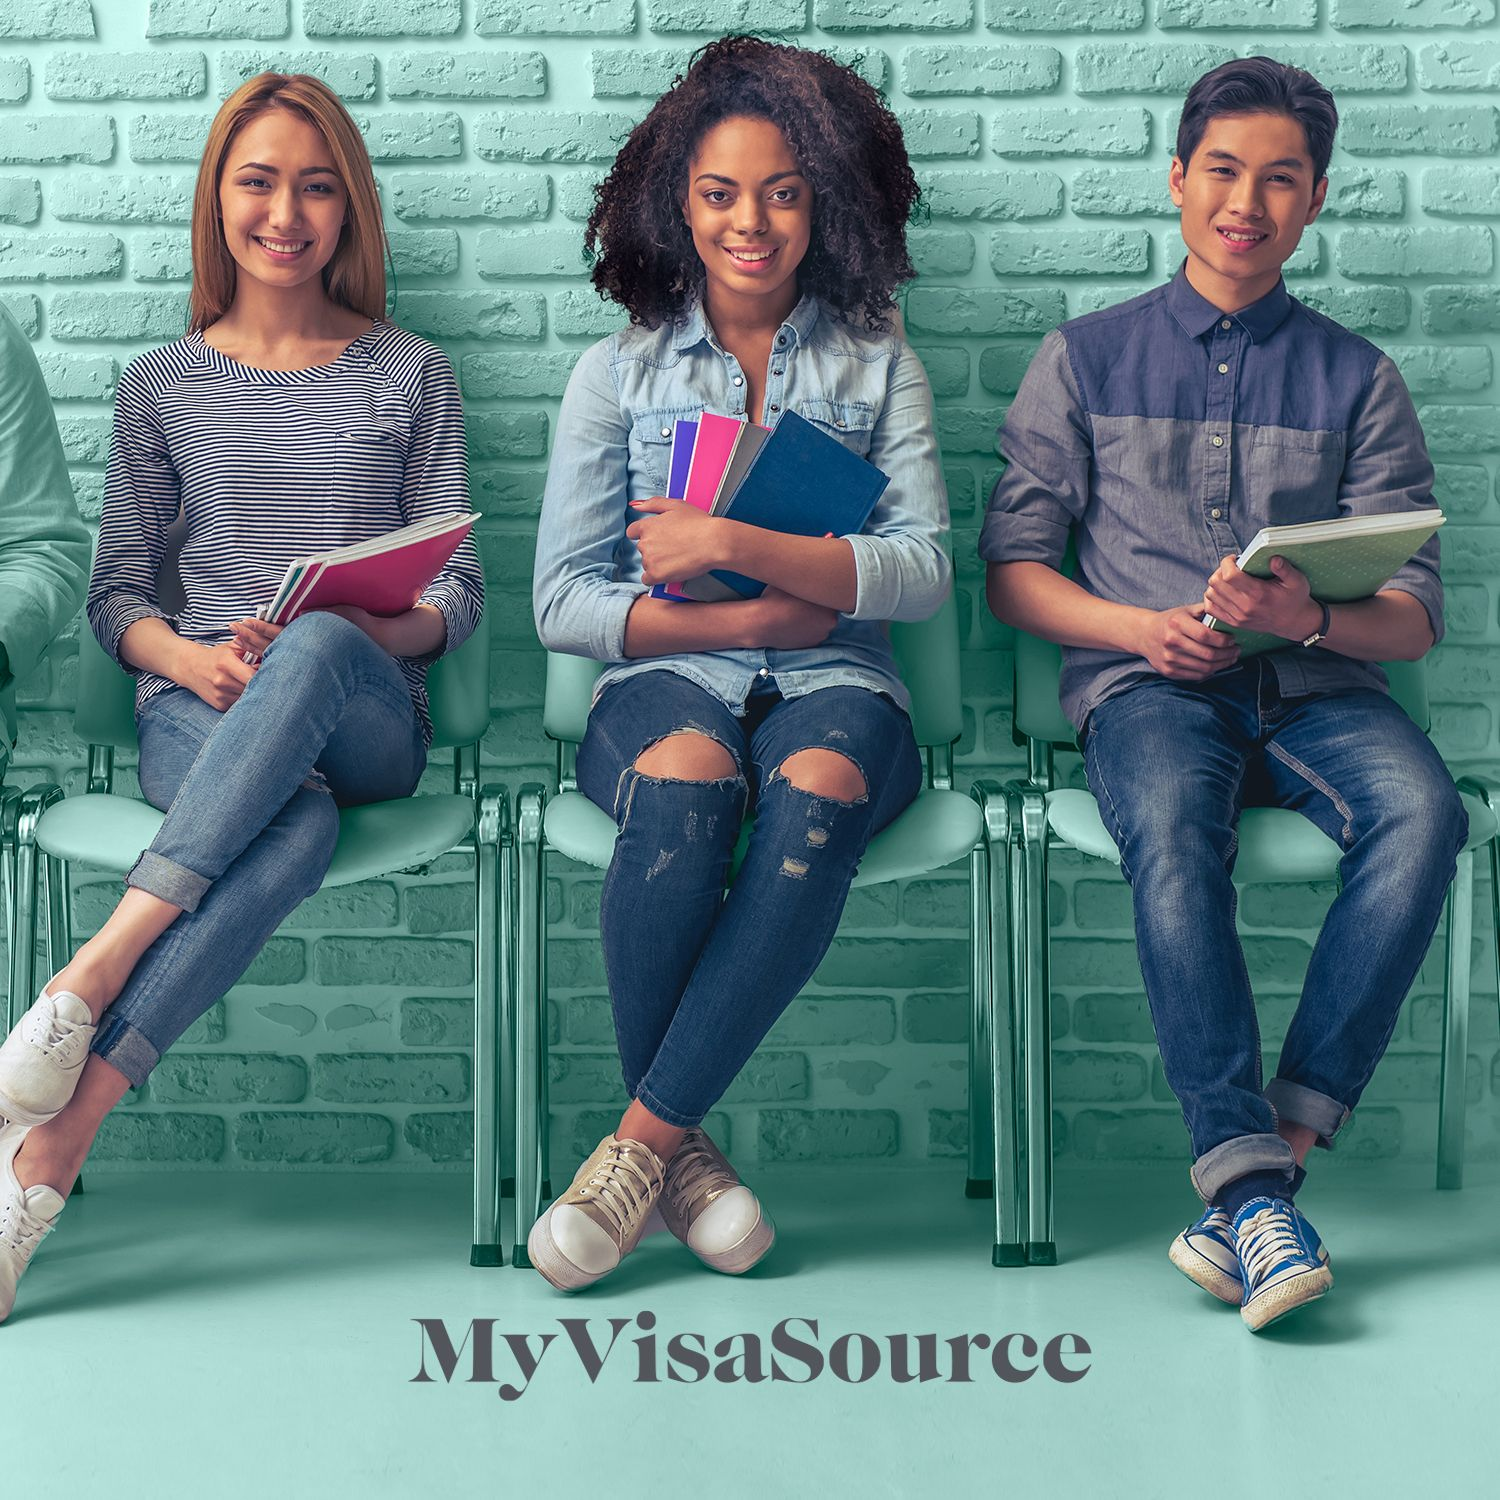 young students waiting in seats my visa source